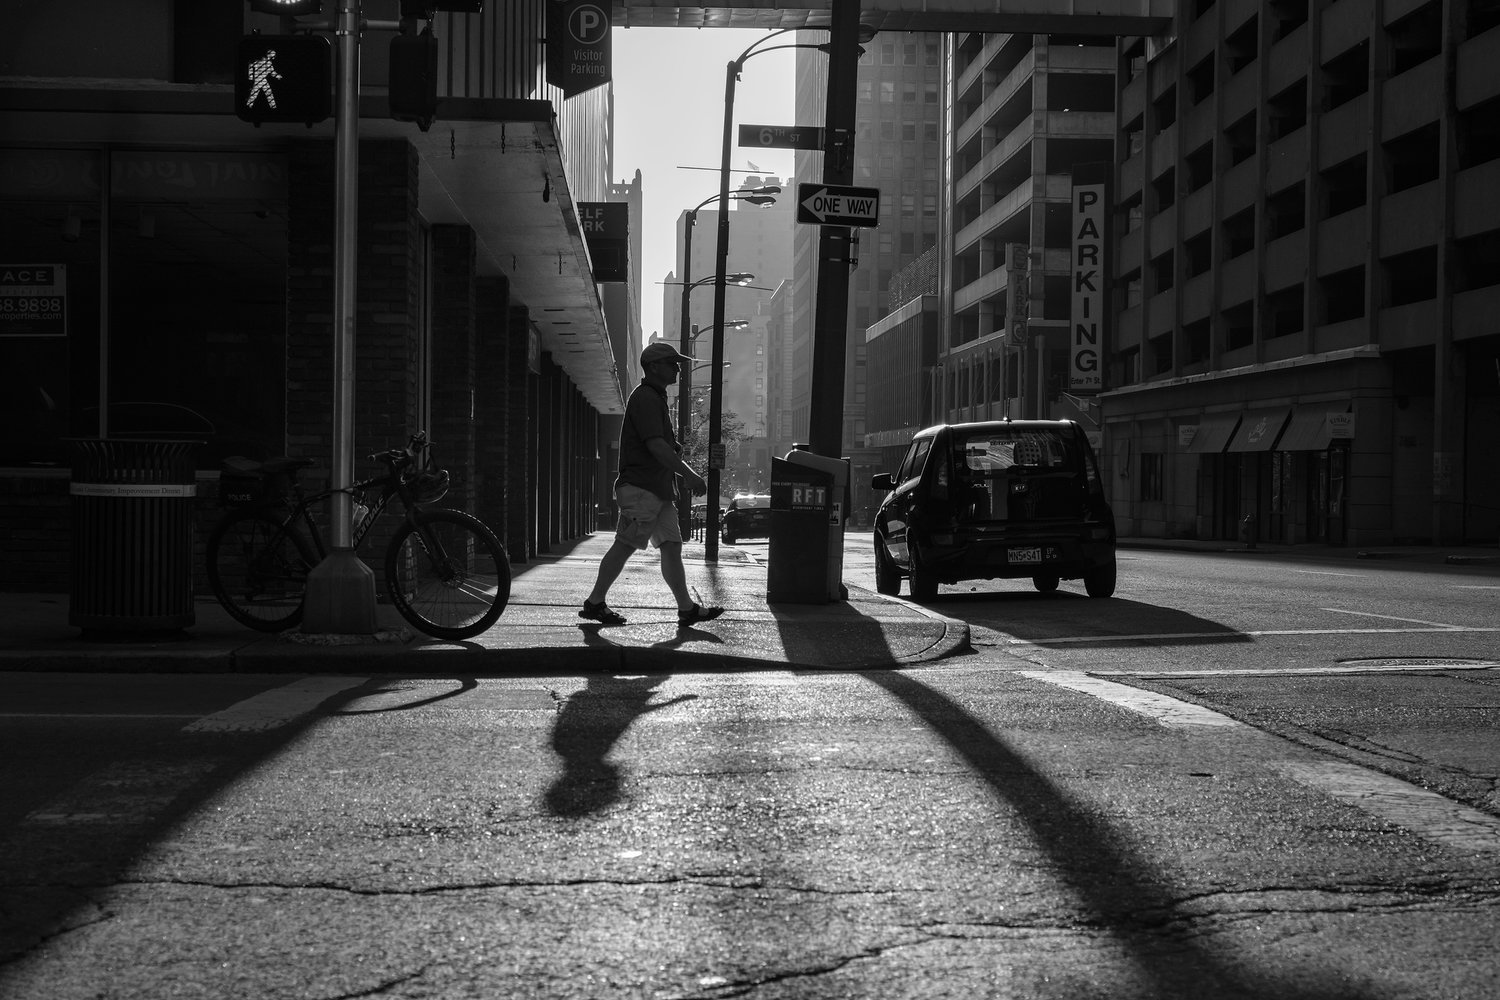 Free to Move About the City • Downtown St. Louis, Missouri. Fuji X-Pro 2 and a Fujinon XF16-55mm f2.8 at 23mm. Image exposed at ISO 200 at F5.6 for 1/500 of a second.